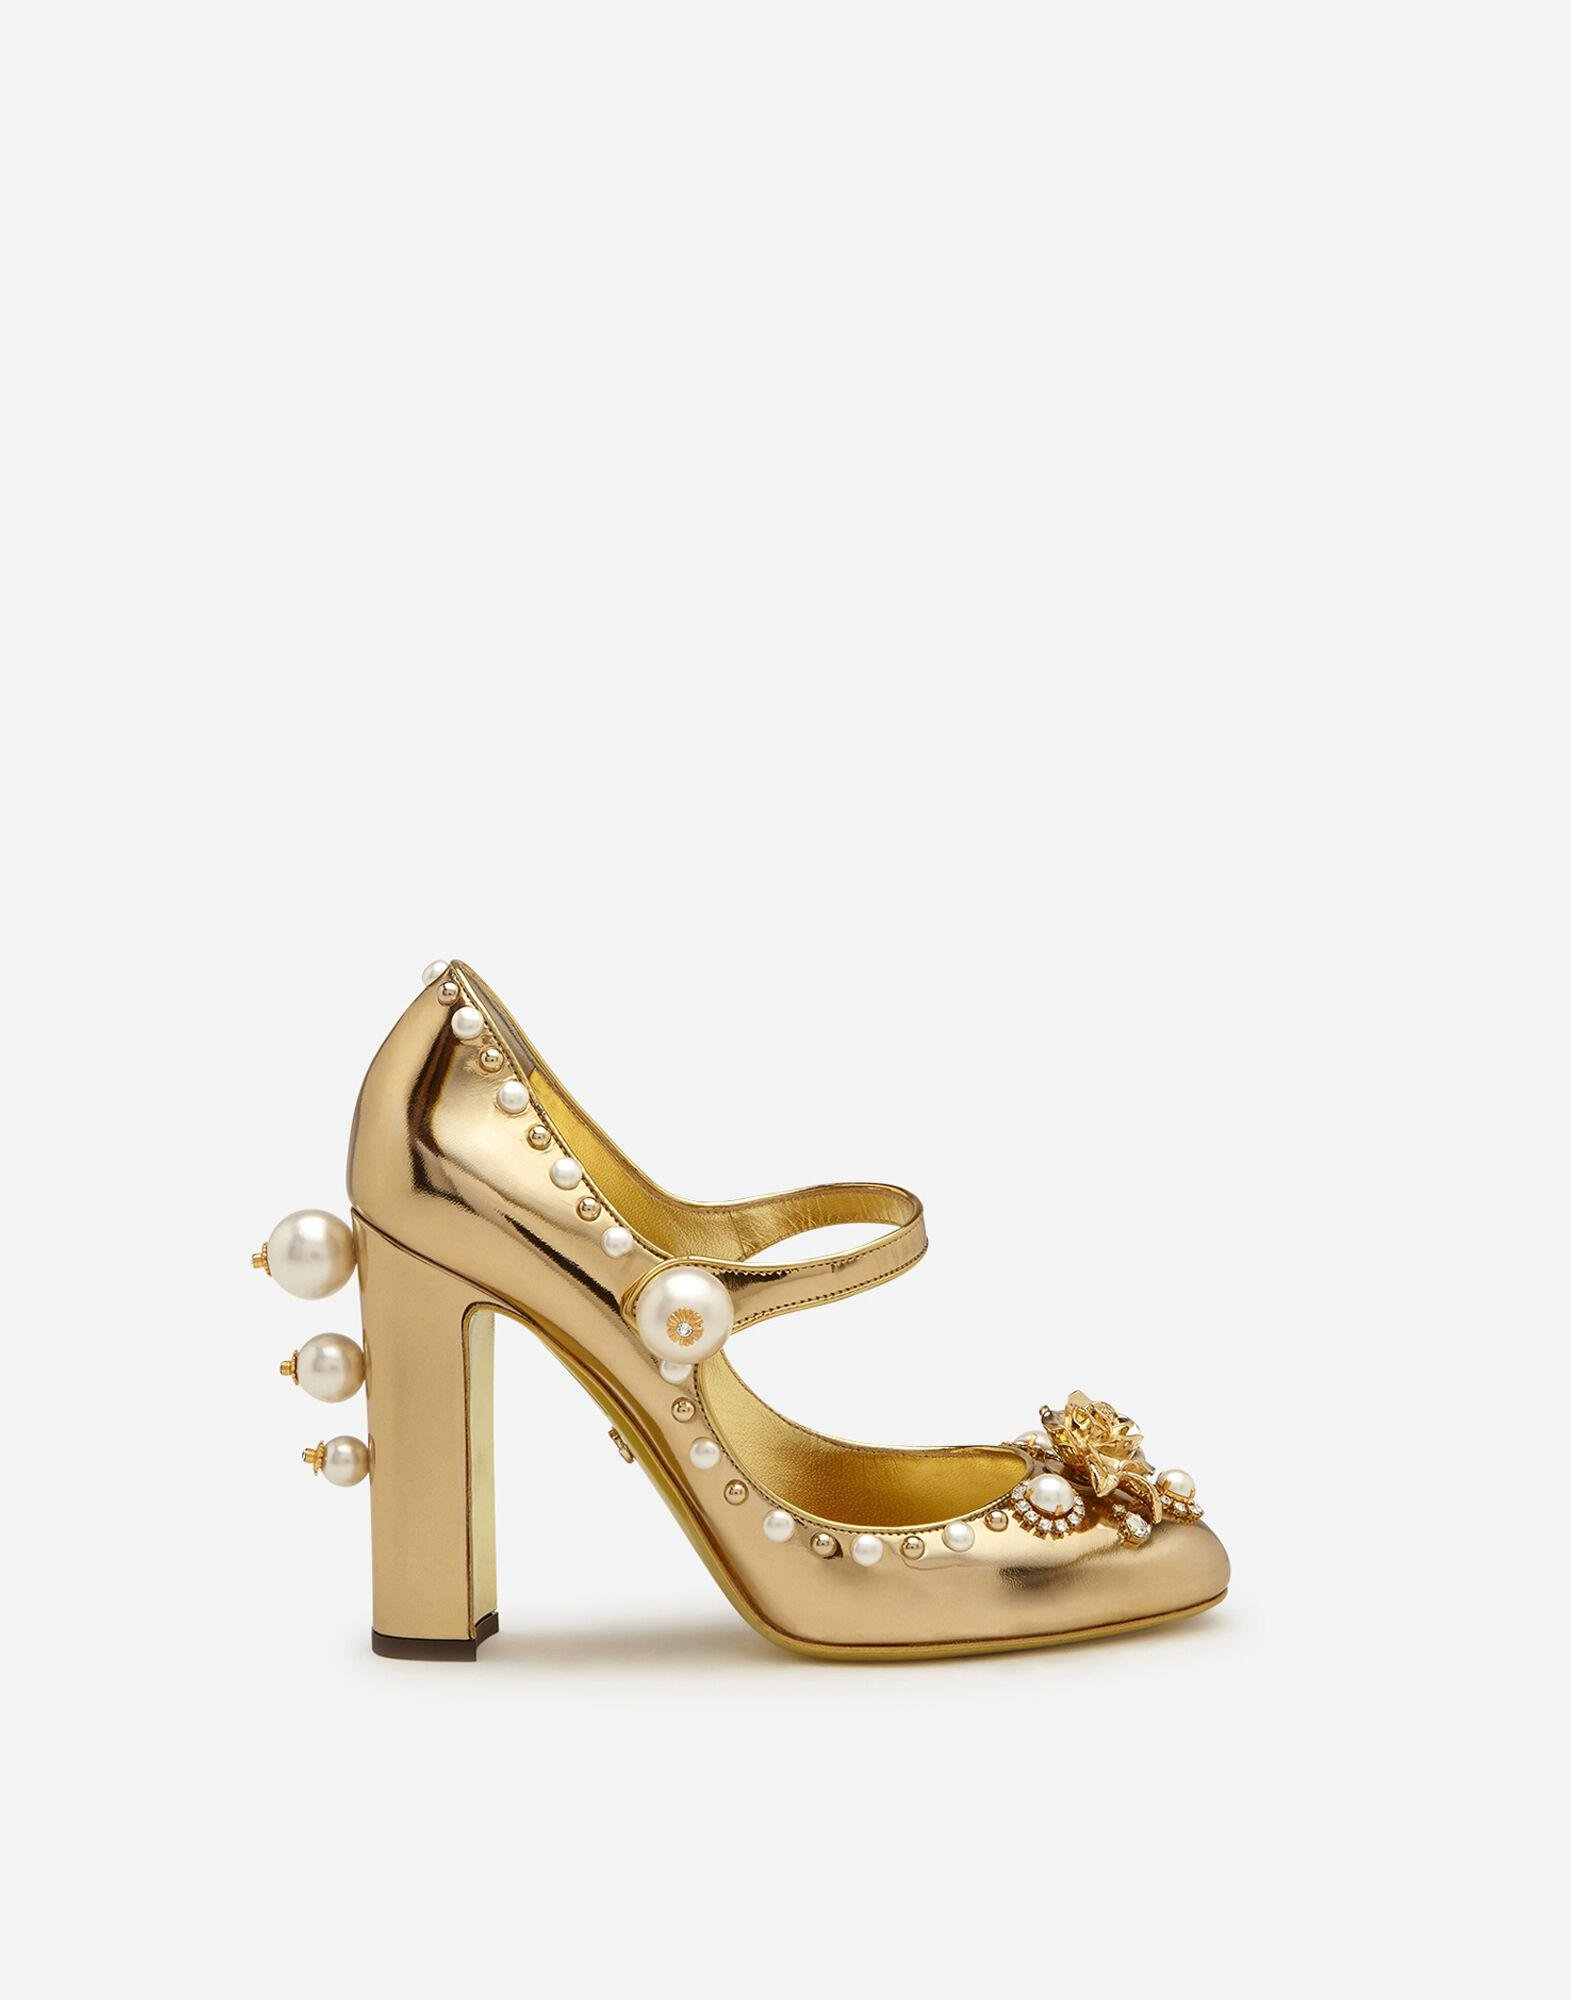 Mirrored calfskin Mary Jane shoes with jewel embroidery